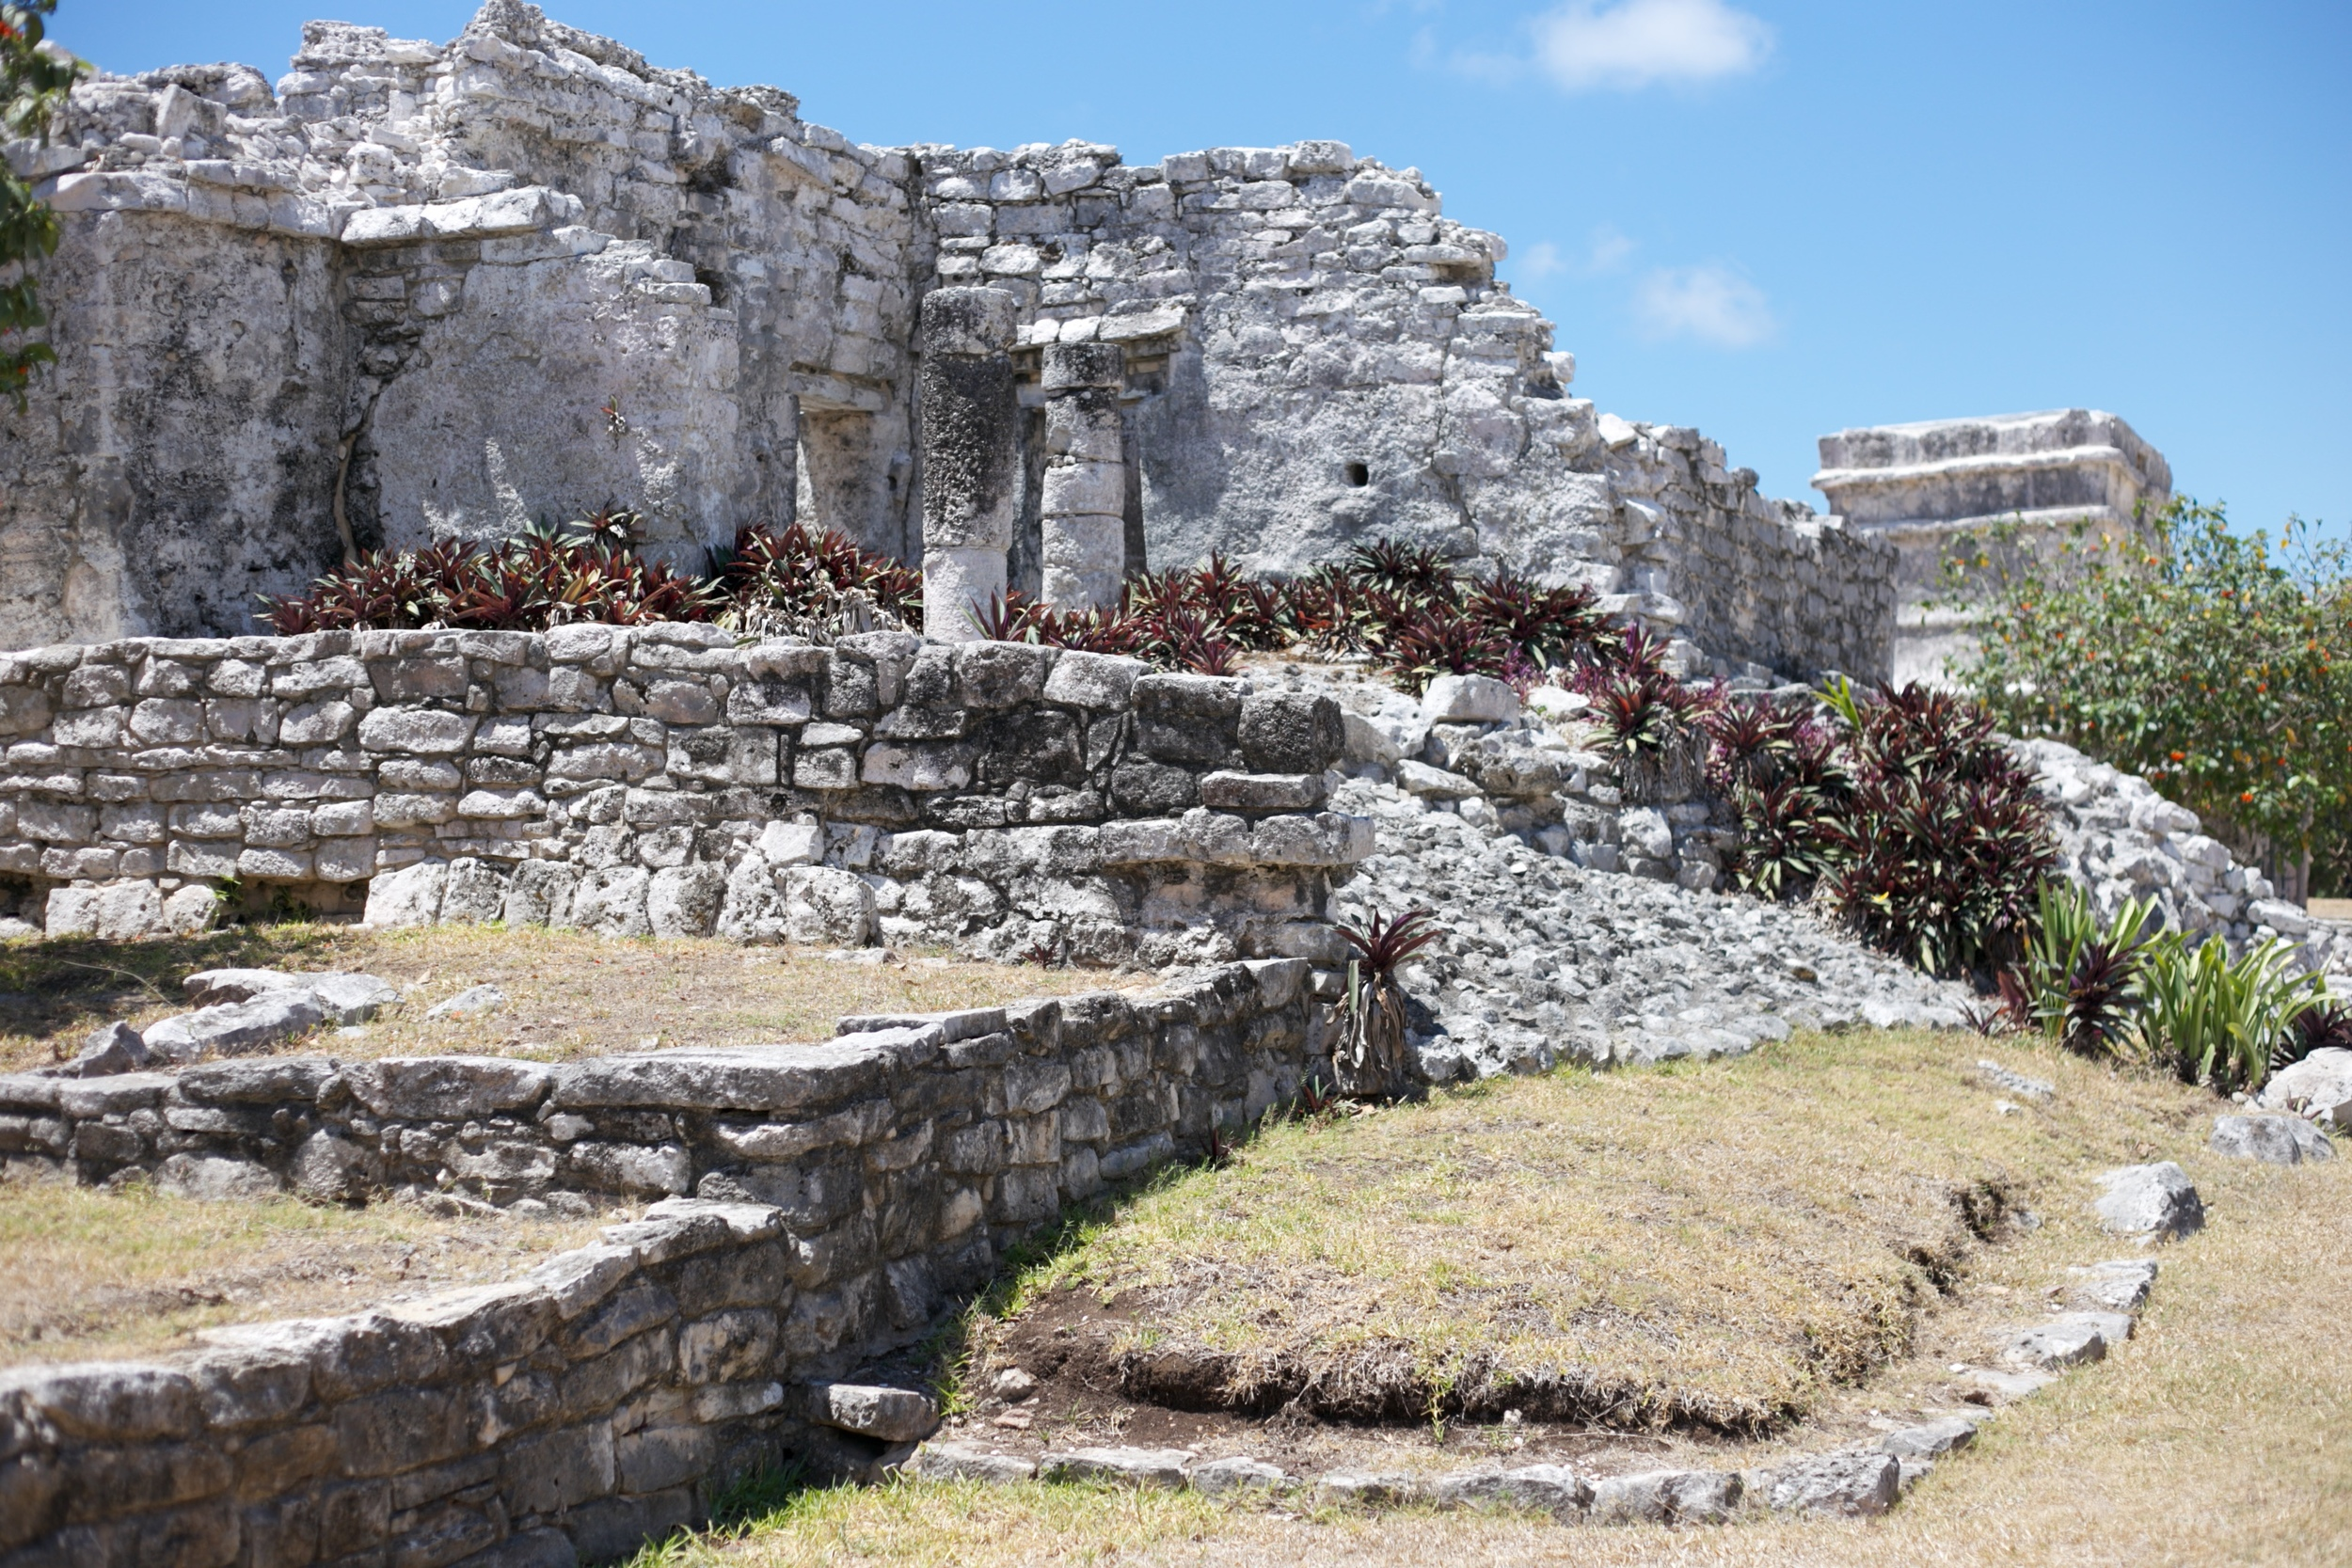 Stone ruins at the Mayan walled city of Tulum.